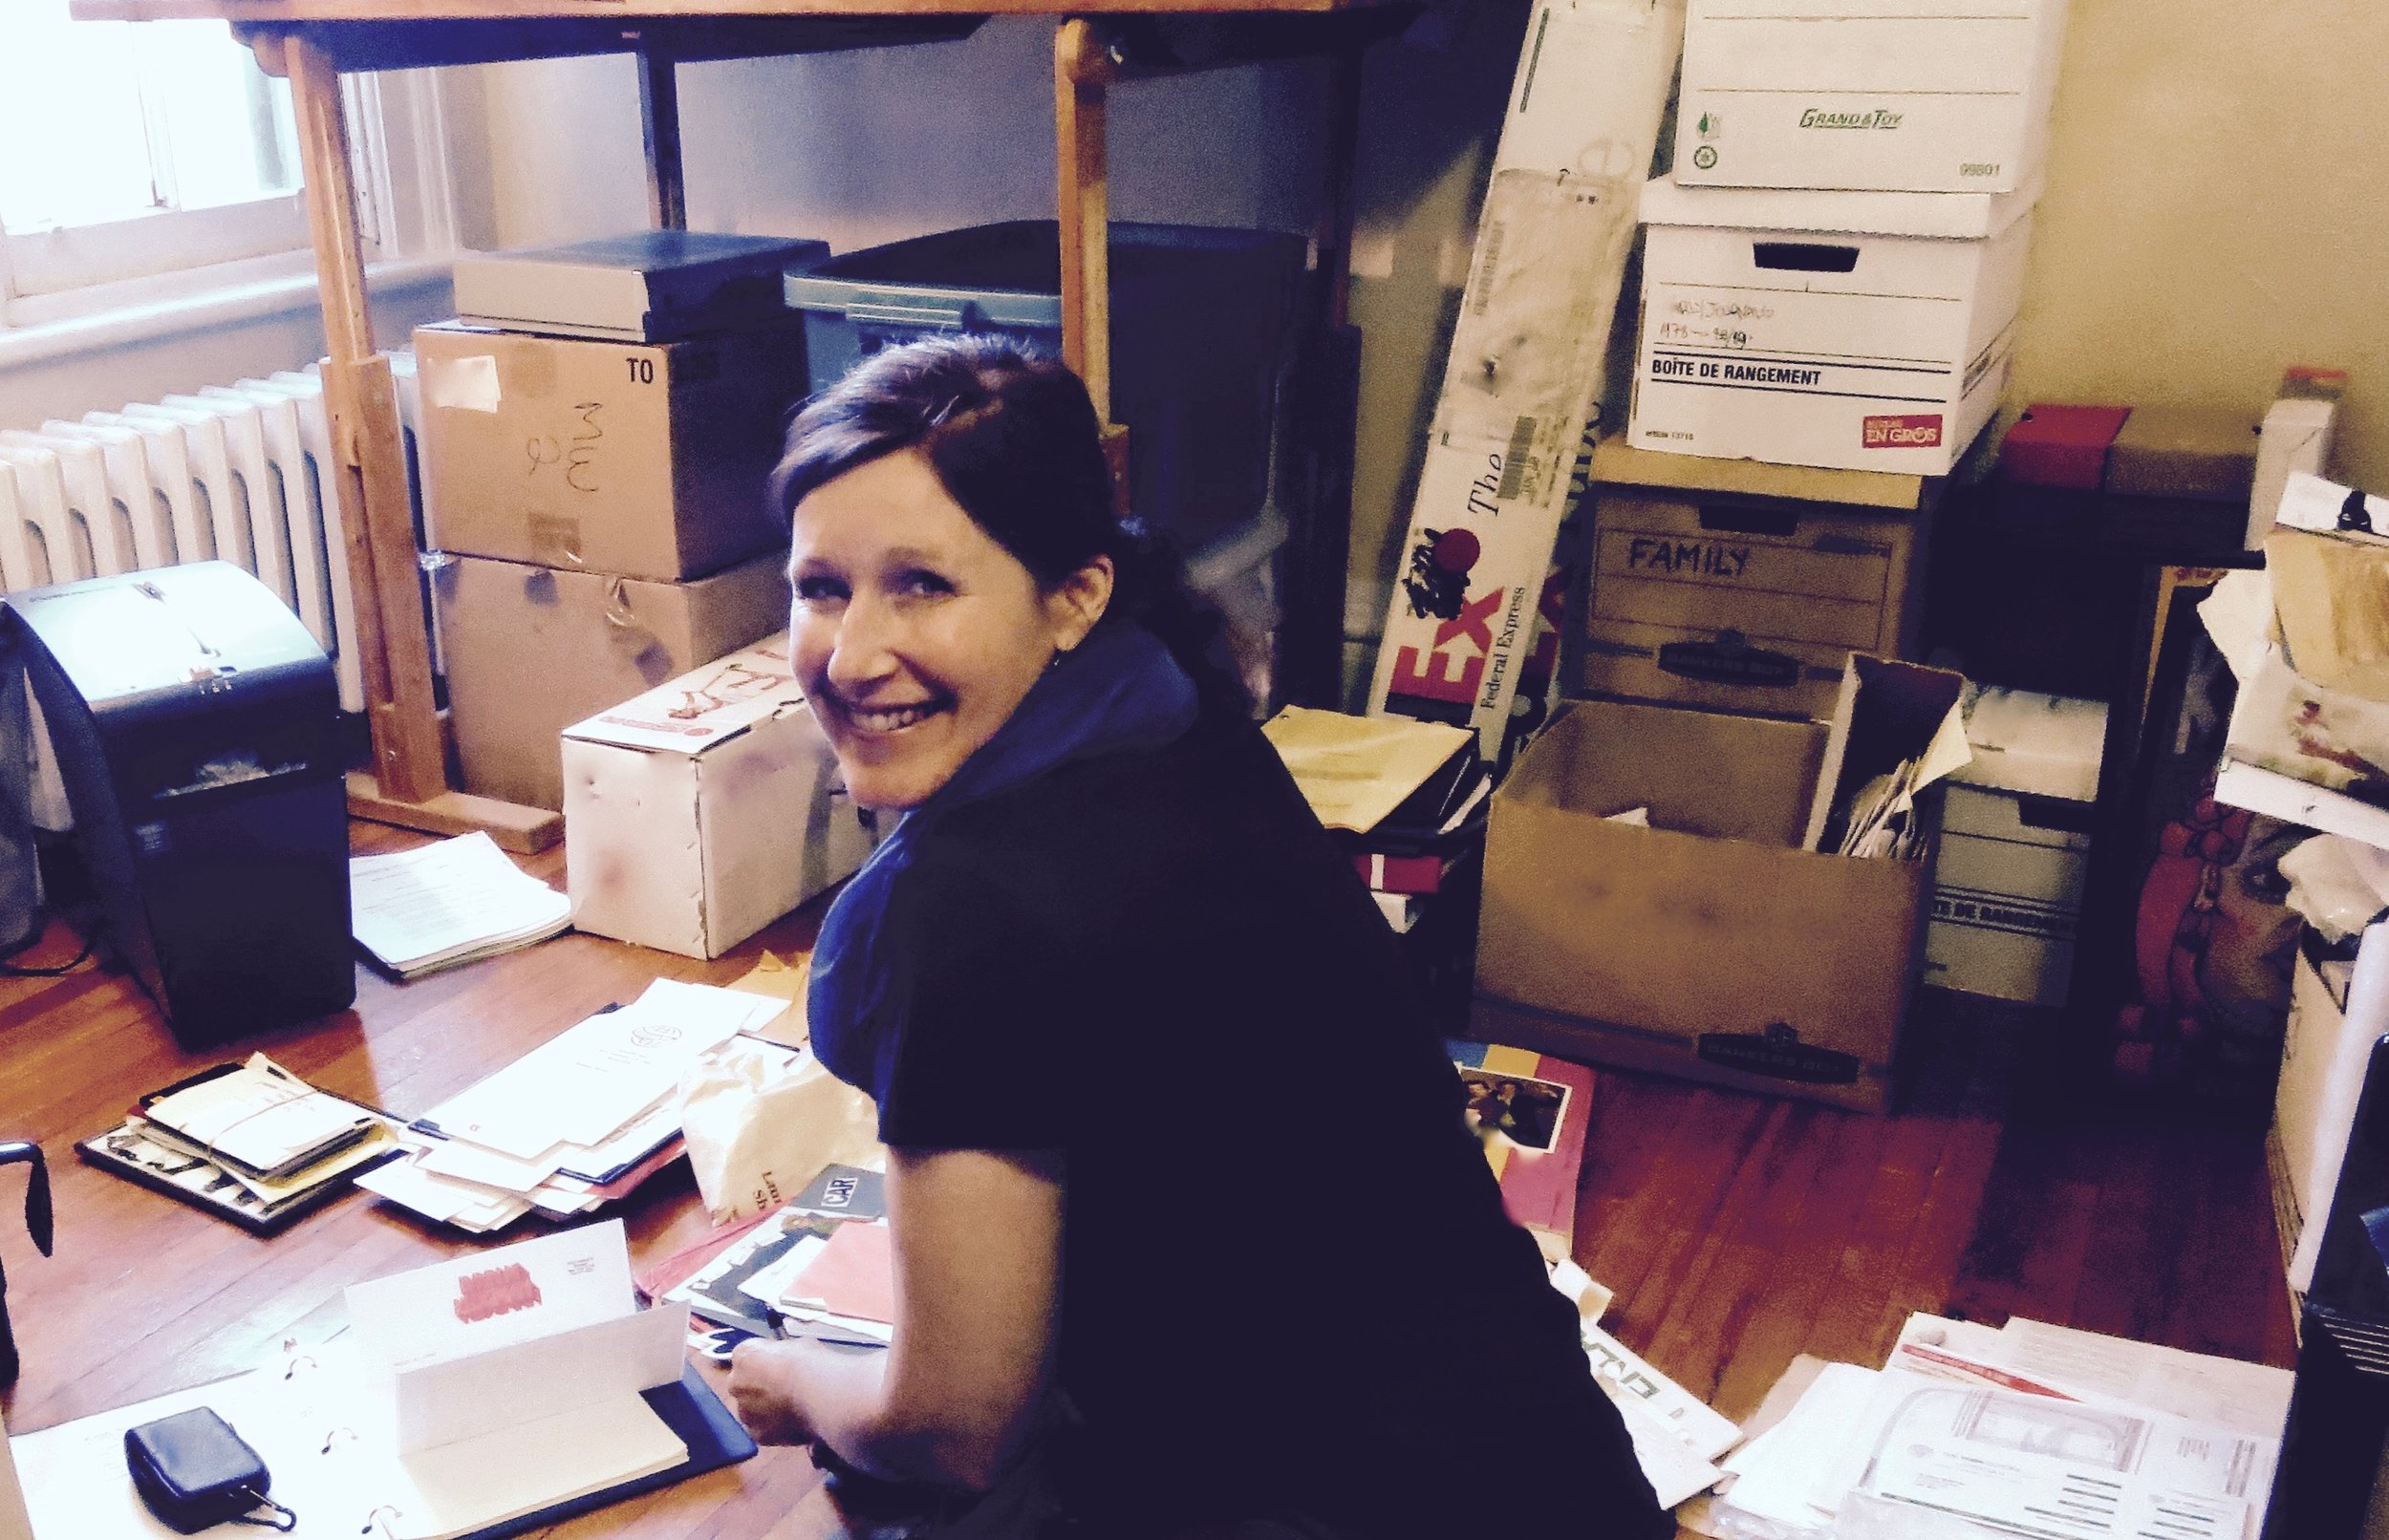 HEATHER MOORE, PERSONAL ARCHIVIST